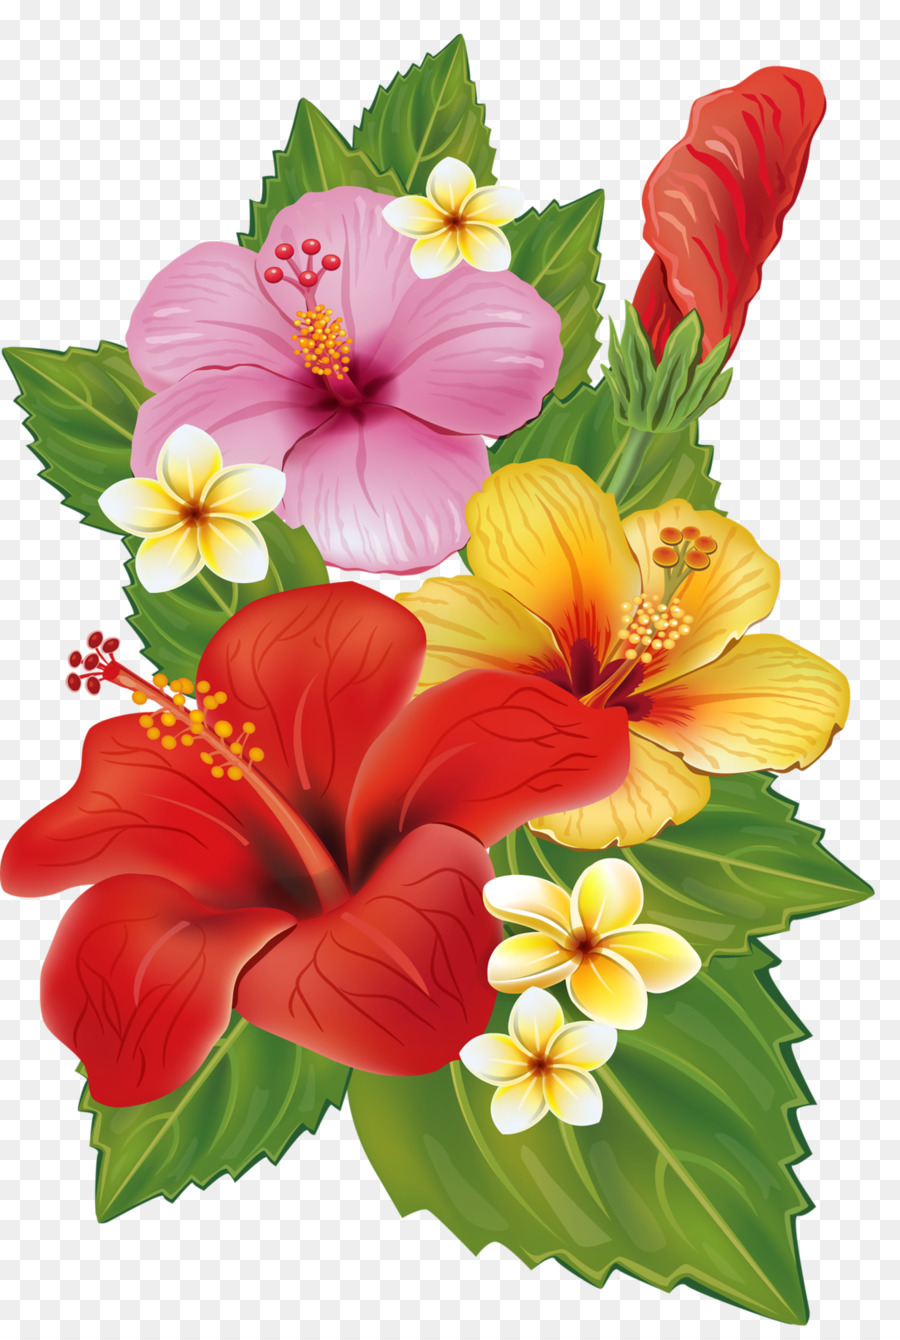 Bouquet Of Flowers Drawing Png Download 1085 1600 Free Transparent Flower Png Download Cleanpng Kisspng